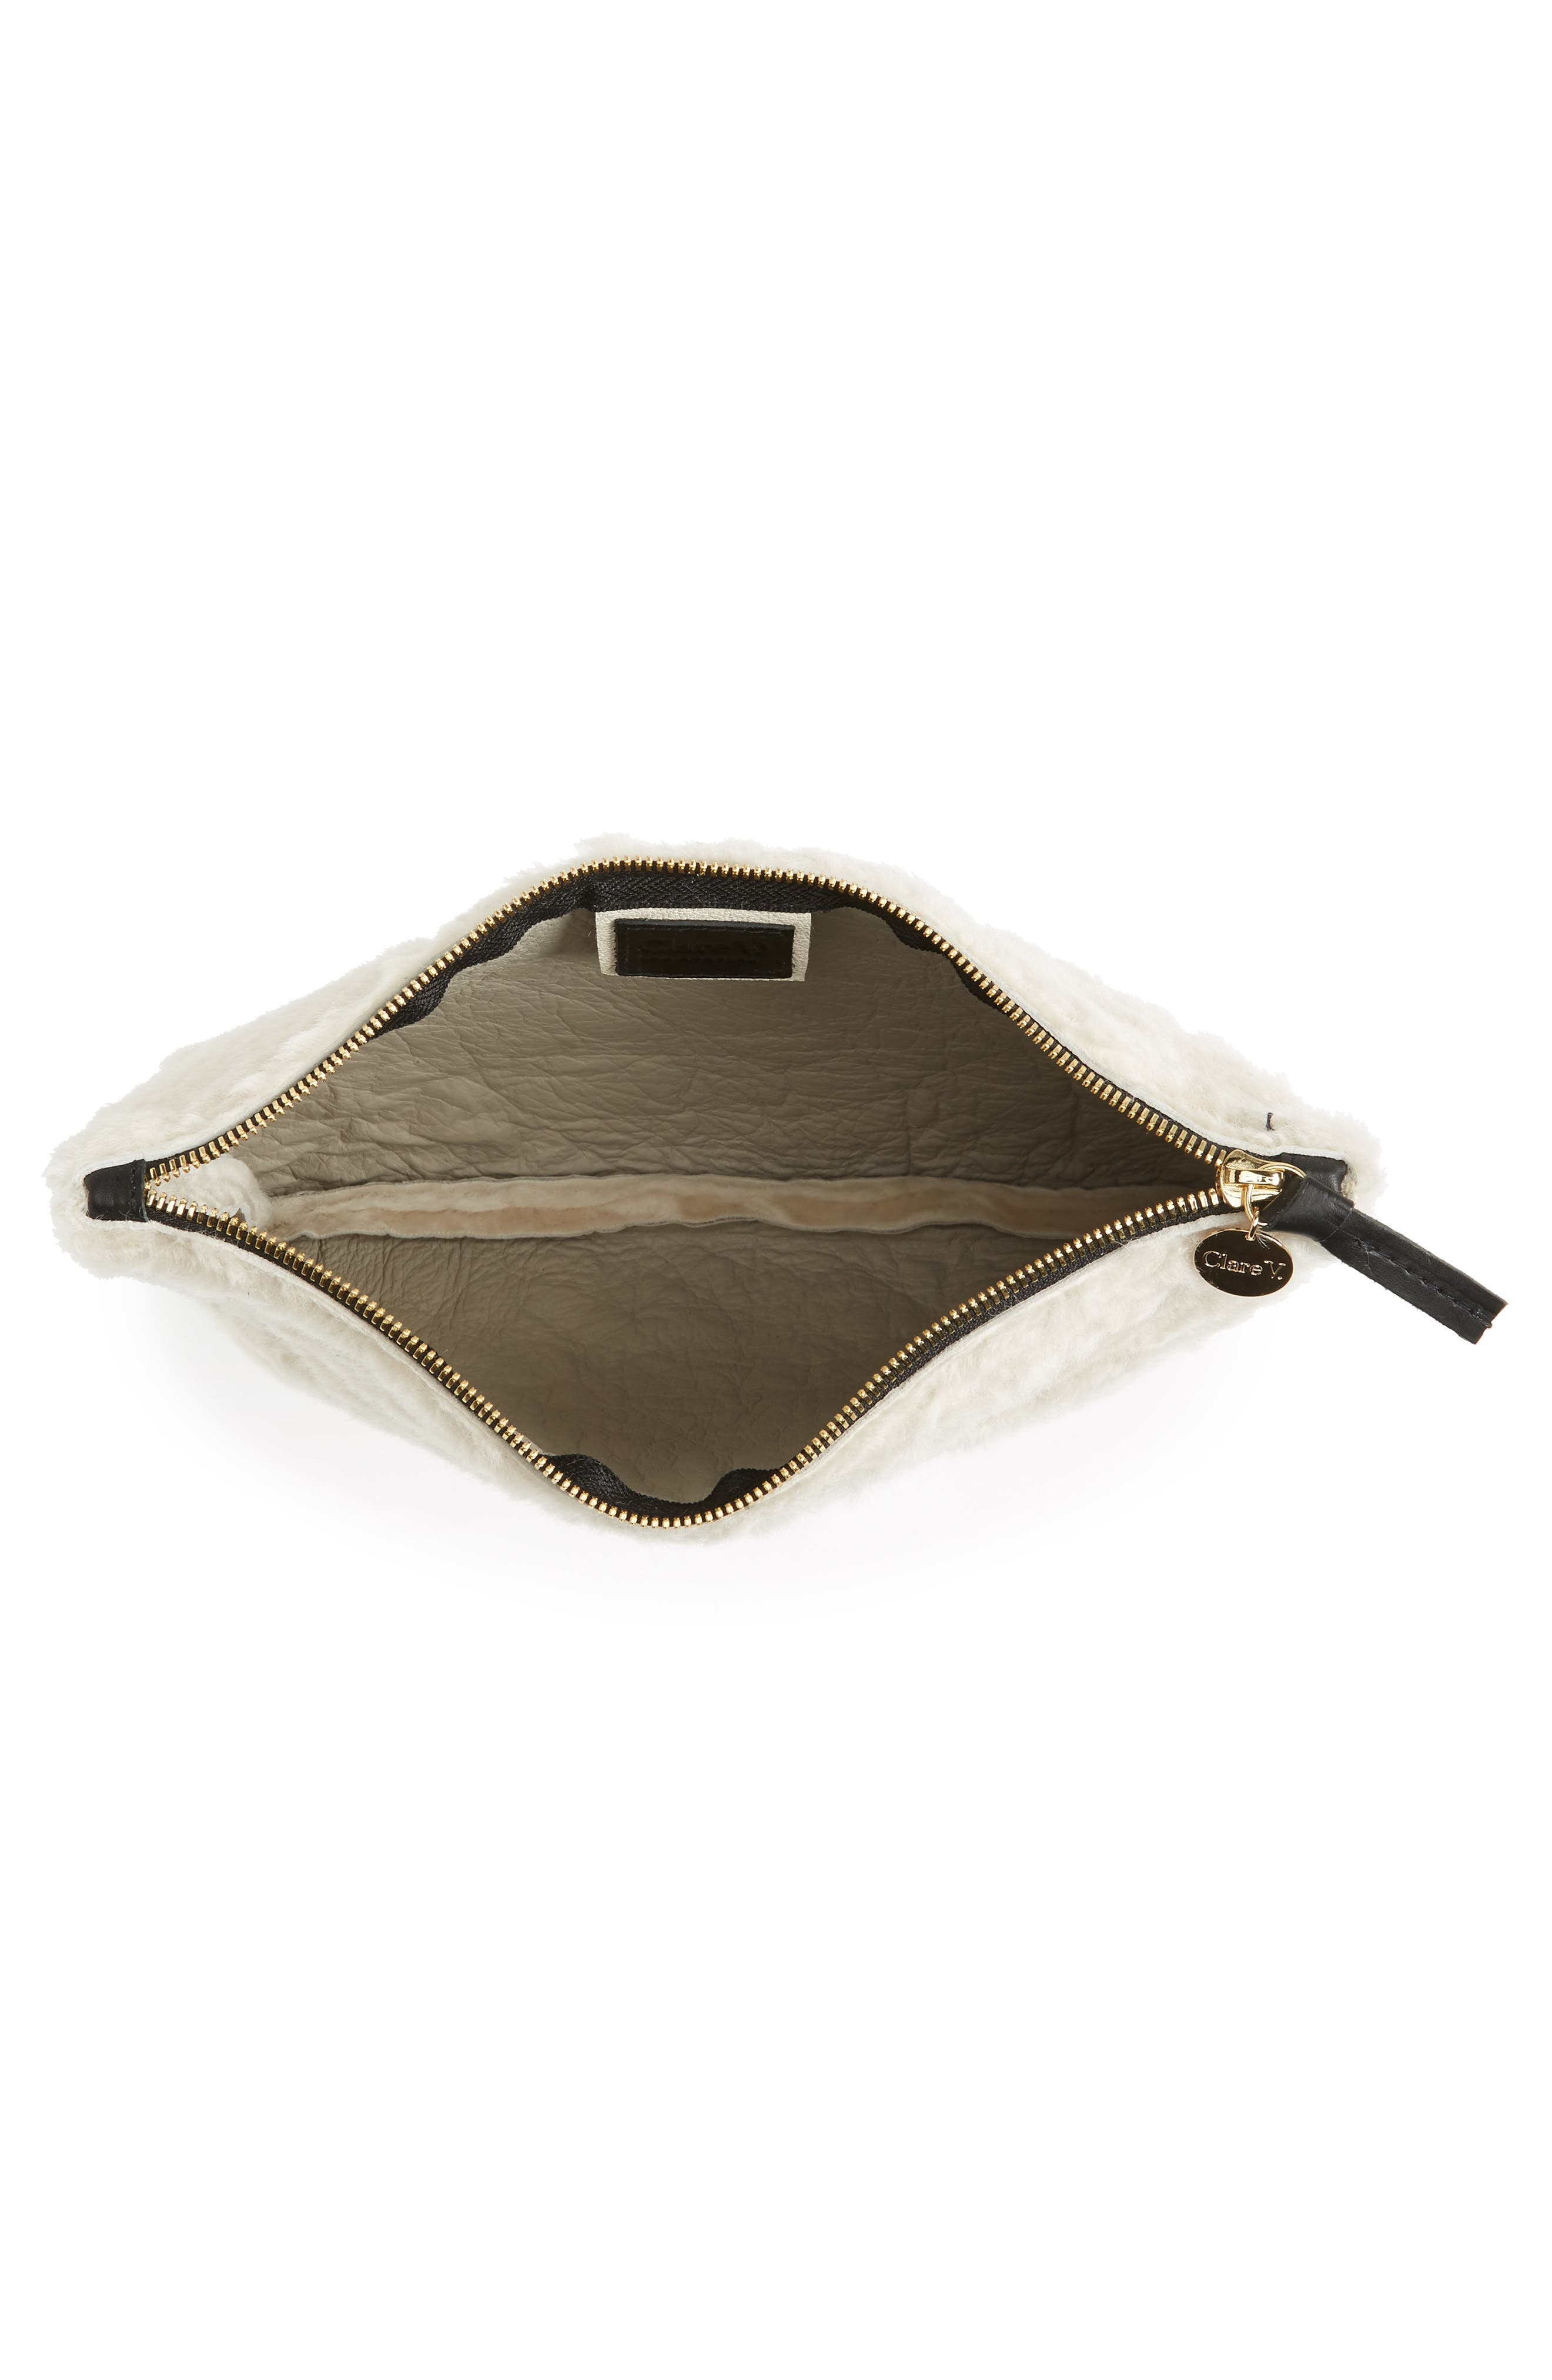 Genuine Shearling Flat Clutch,                             Alternate thumbnail 4, color,                             900